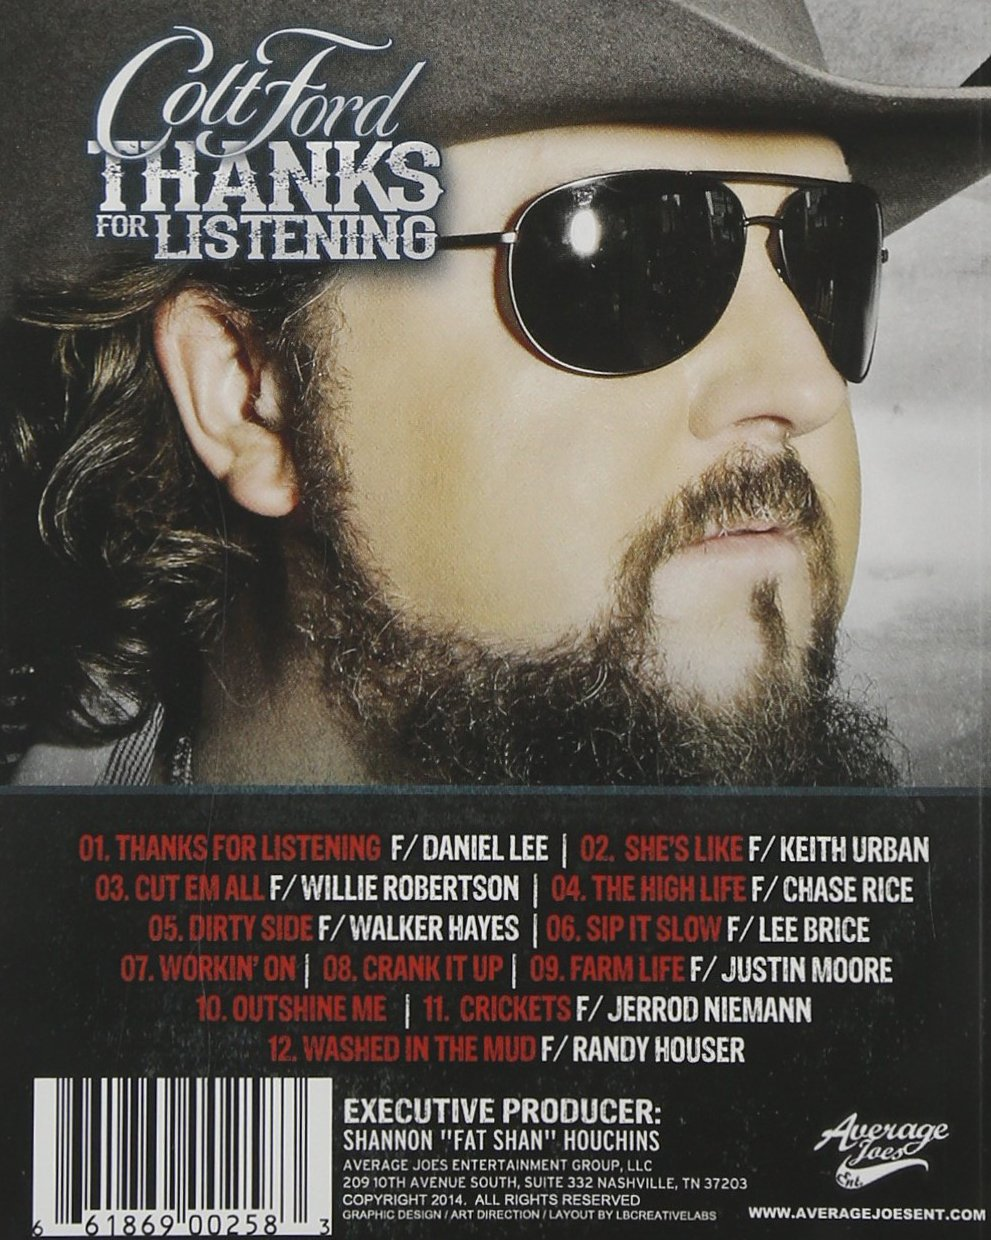 Amazon.com Colt Ford Thanks